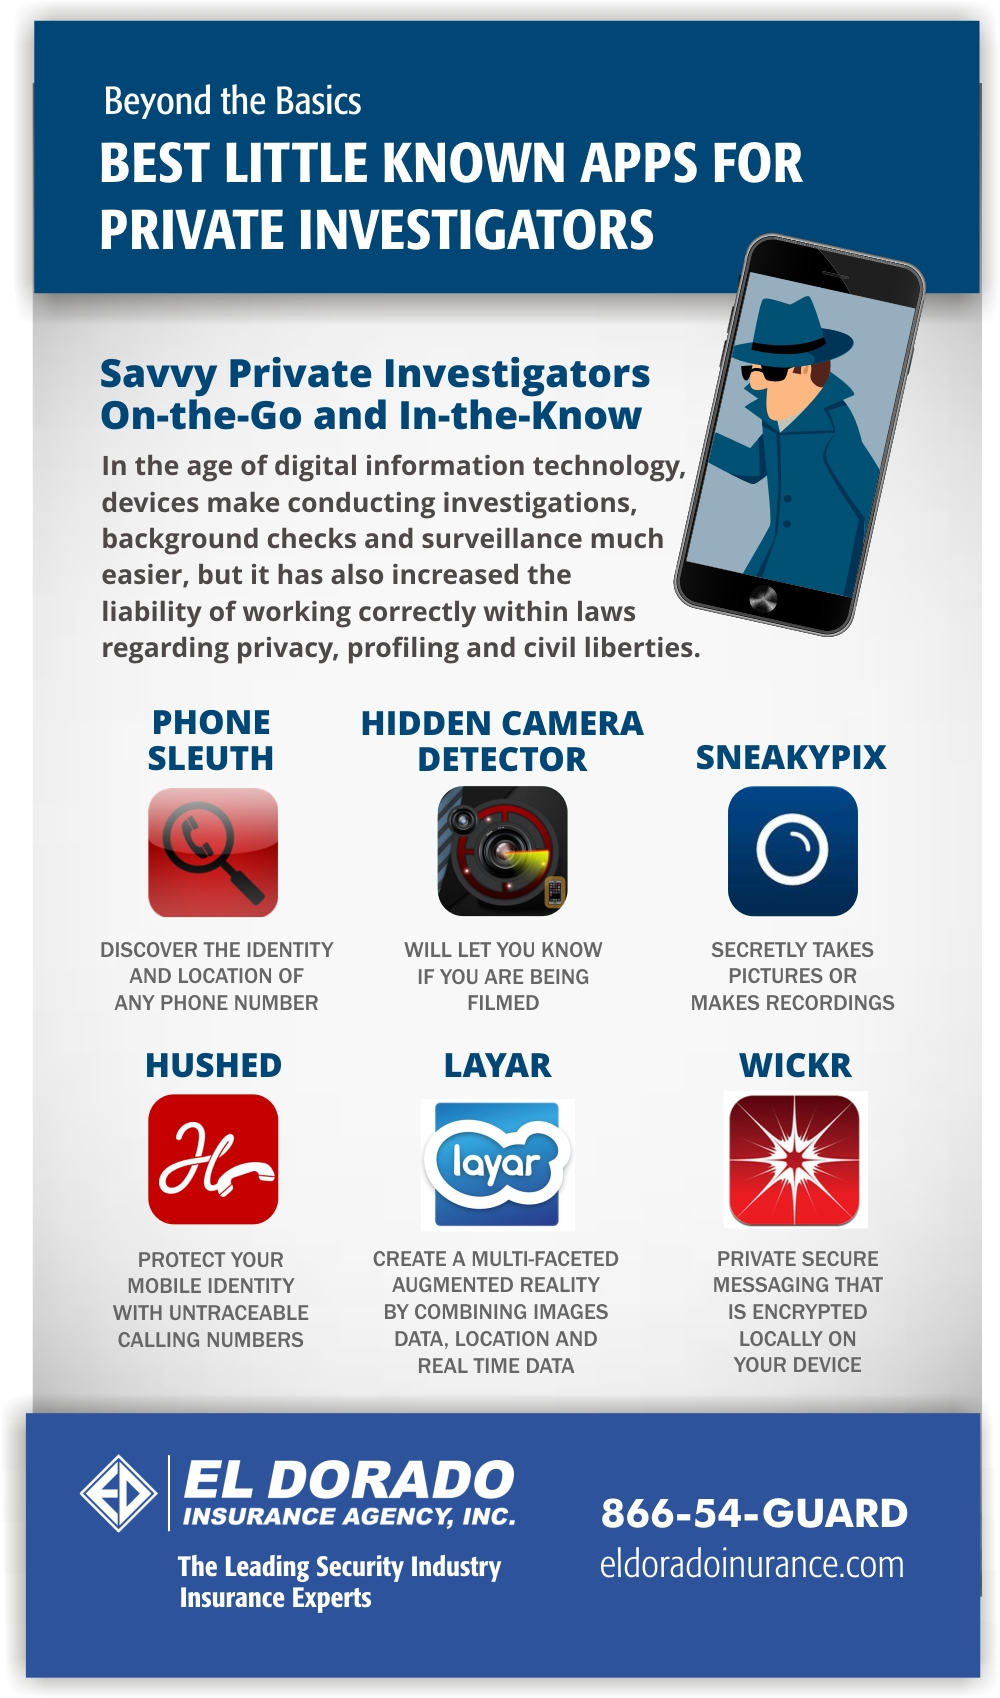 [Infographic] Best Little-Known Mobile Apps for Private Investigators